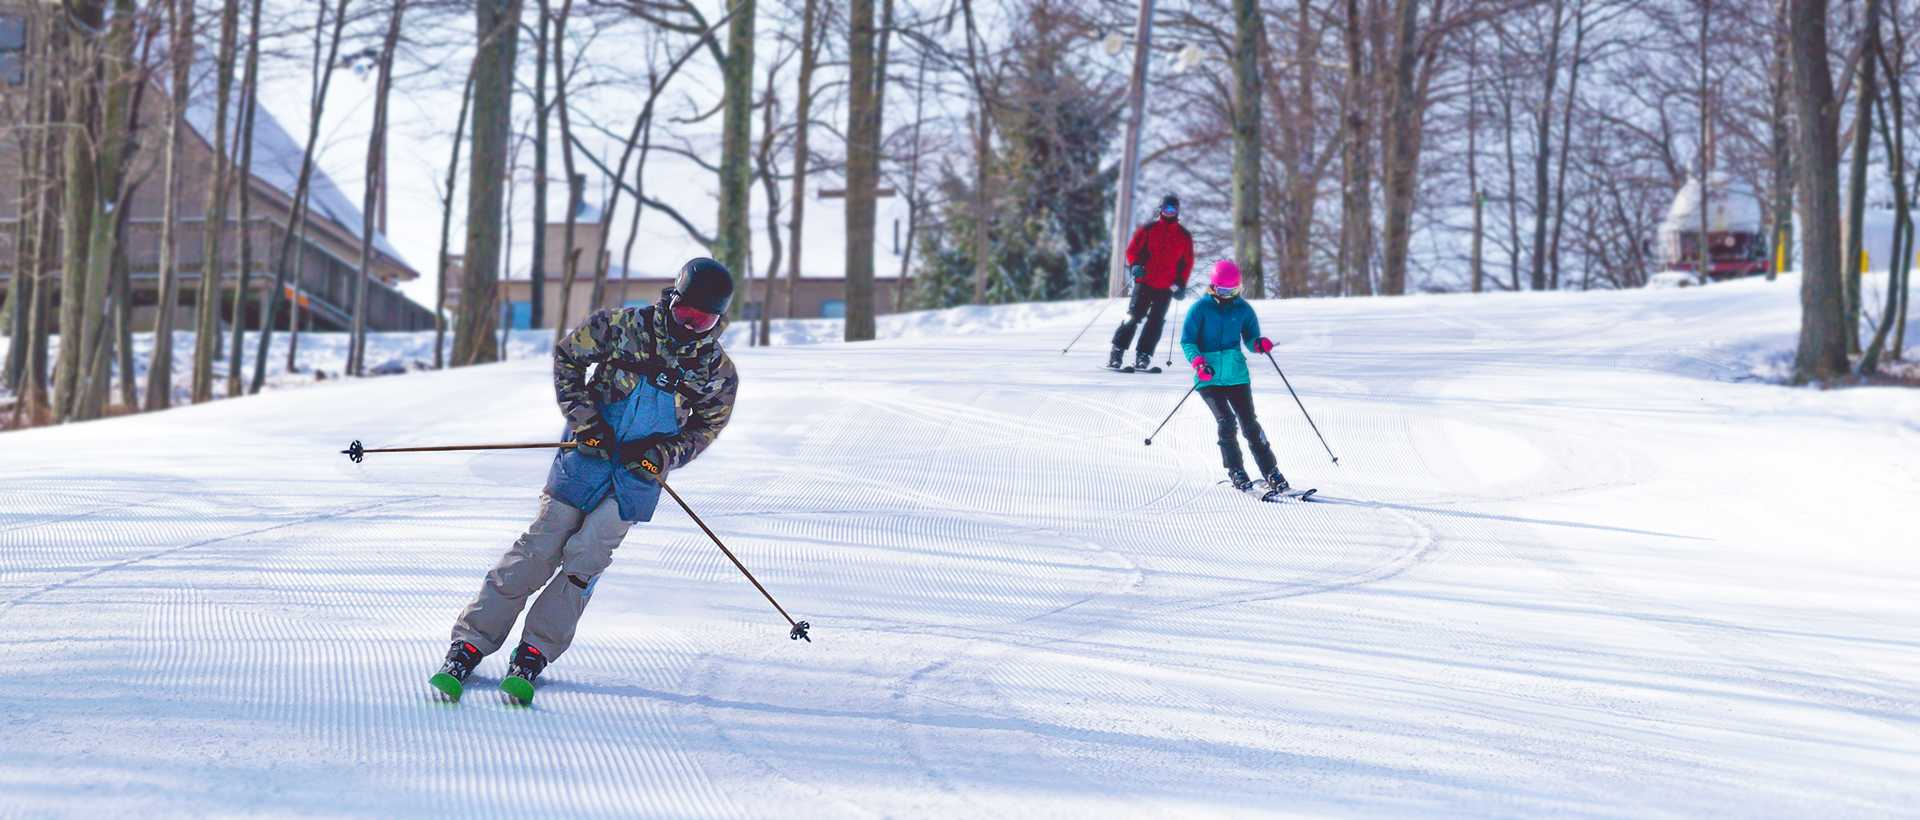 People skiing on Montage Mountain in Lackawanna County